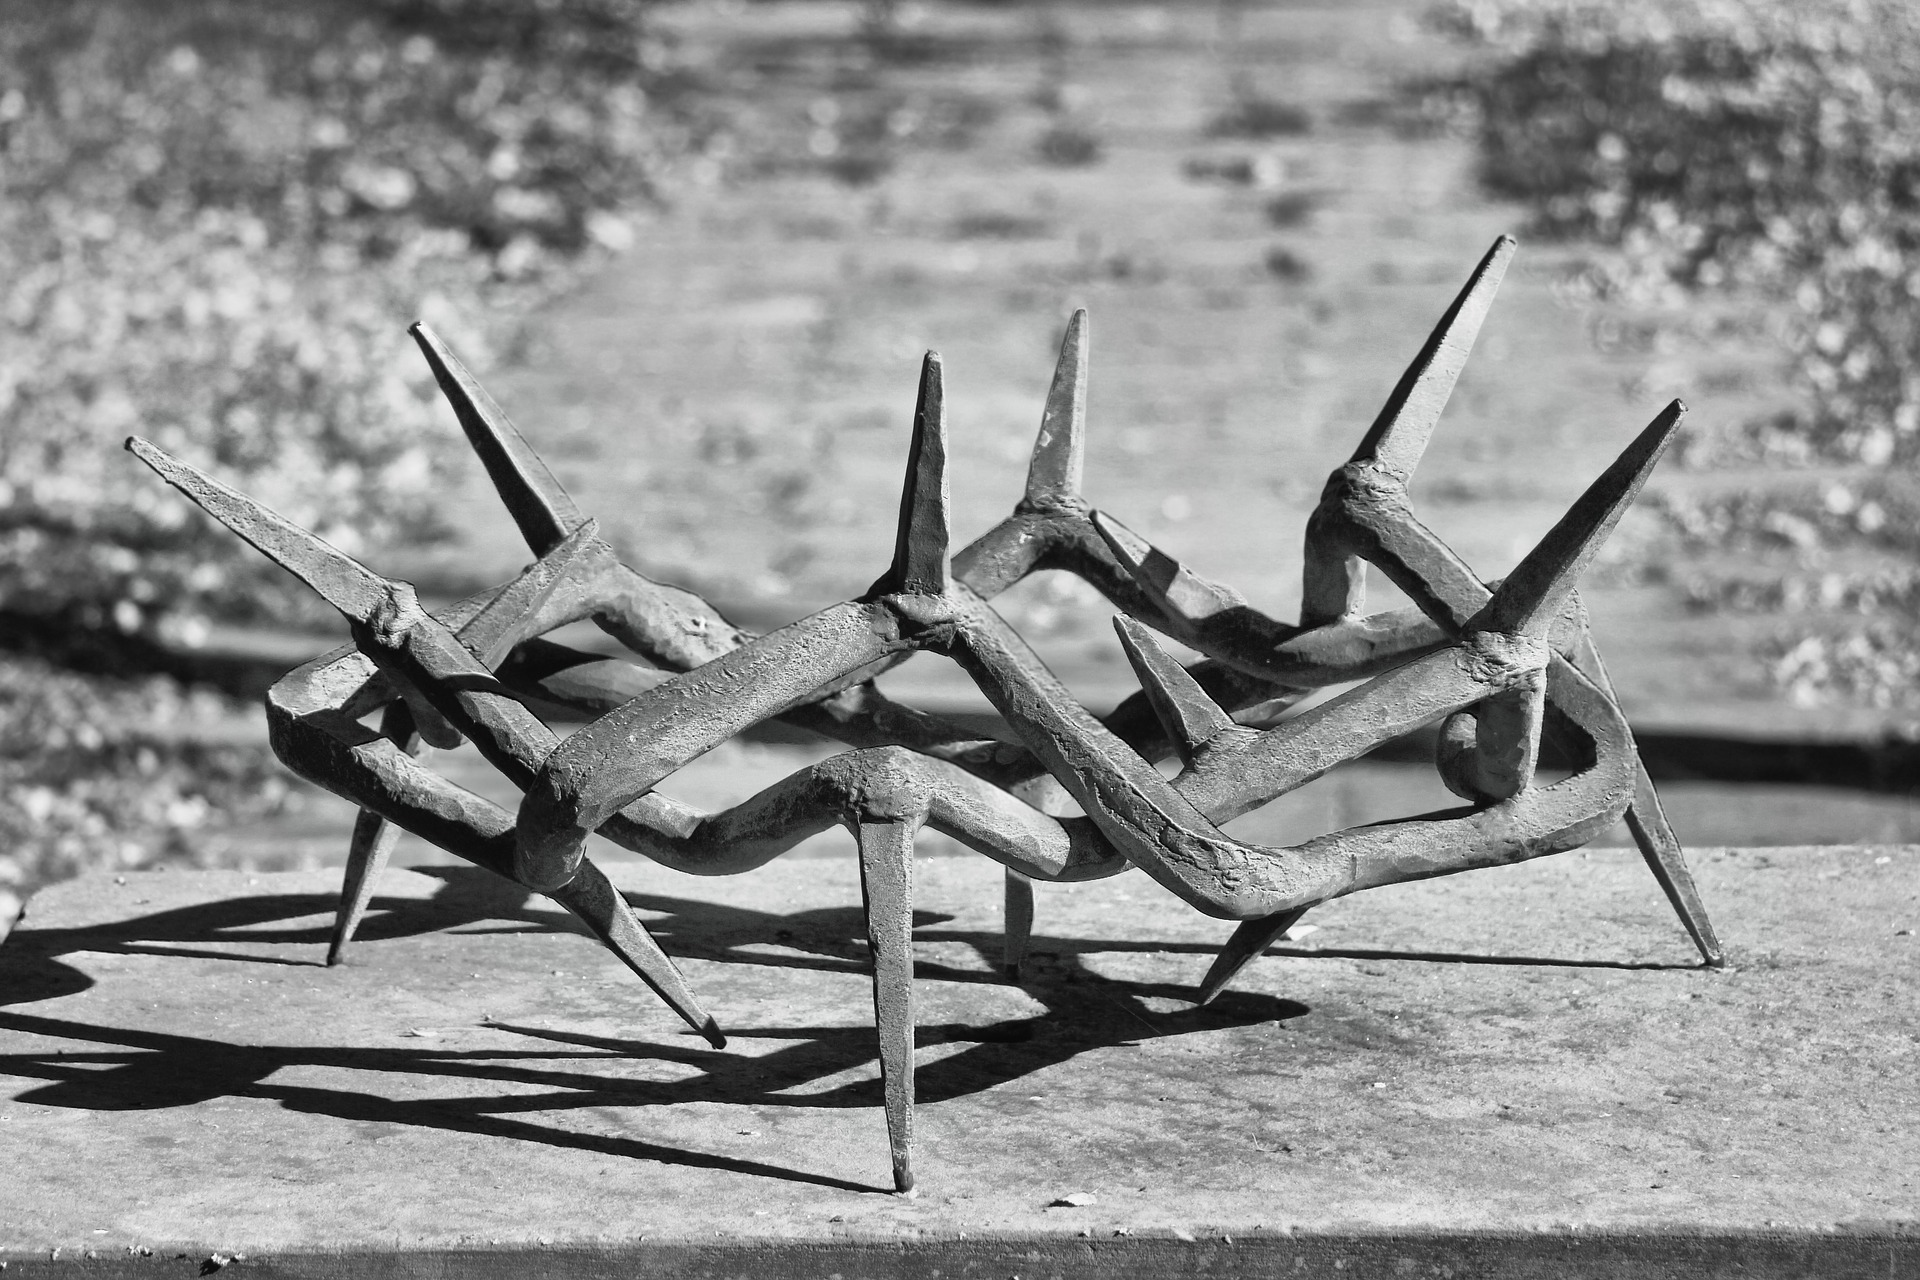 crown-of-thorns-3751860_1920